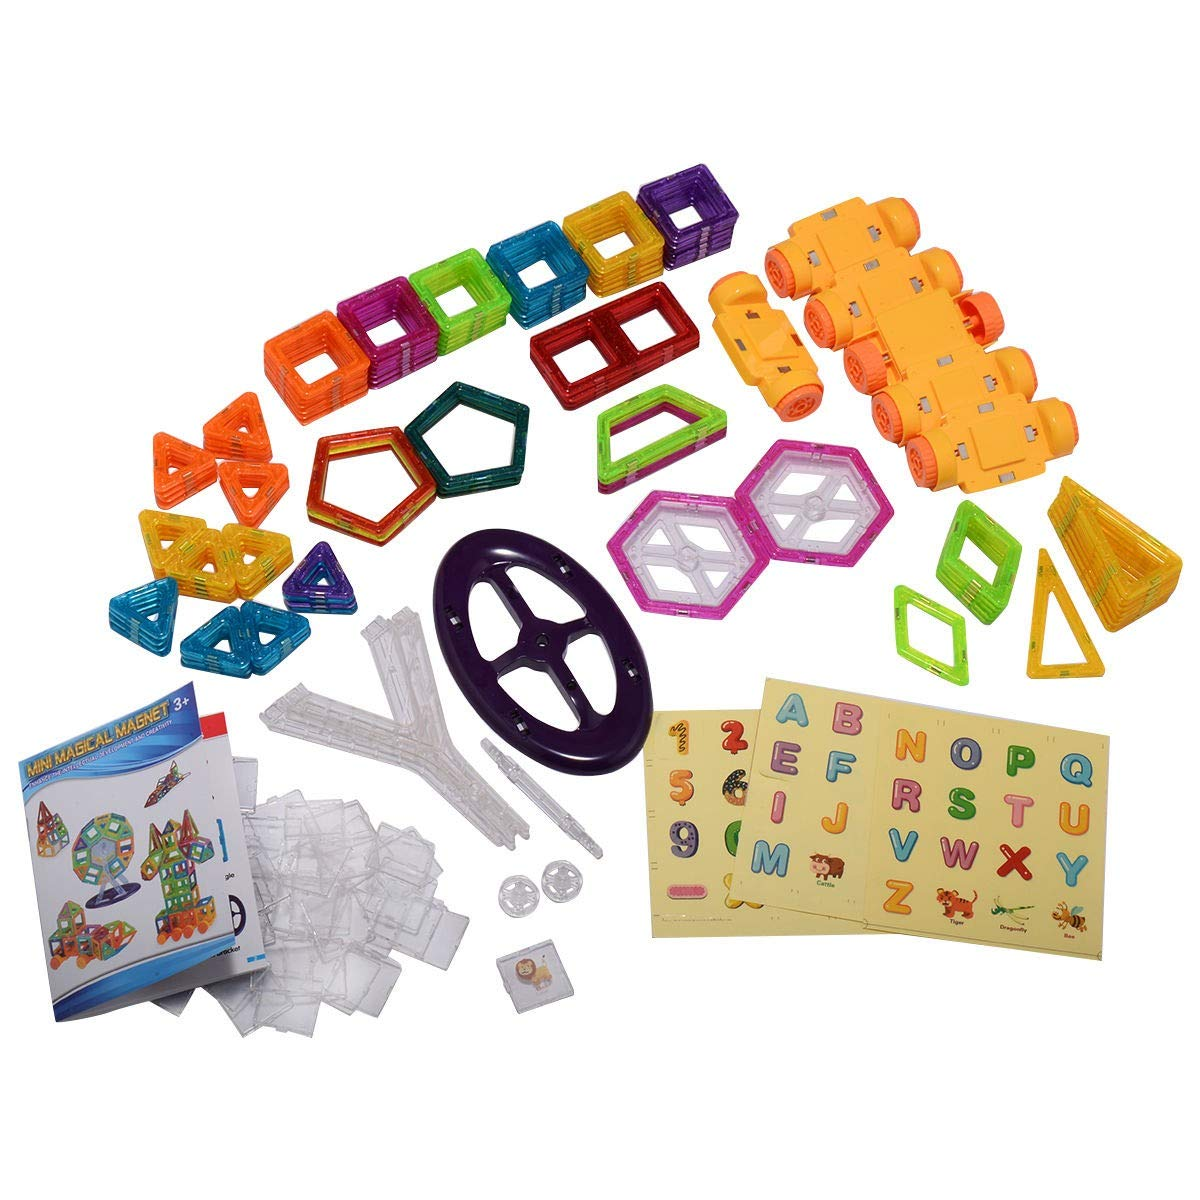 EnjoyShop 158 pcs Magical Magnetic Construction Building Blocks Smooth Interface and Good Abrasion Resistance for Durability by EnjoyShop (Image #1)